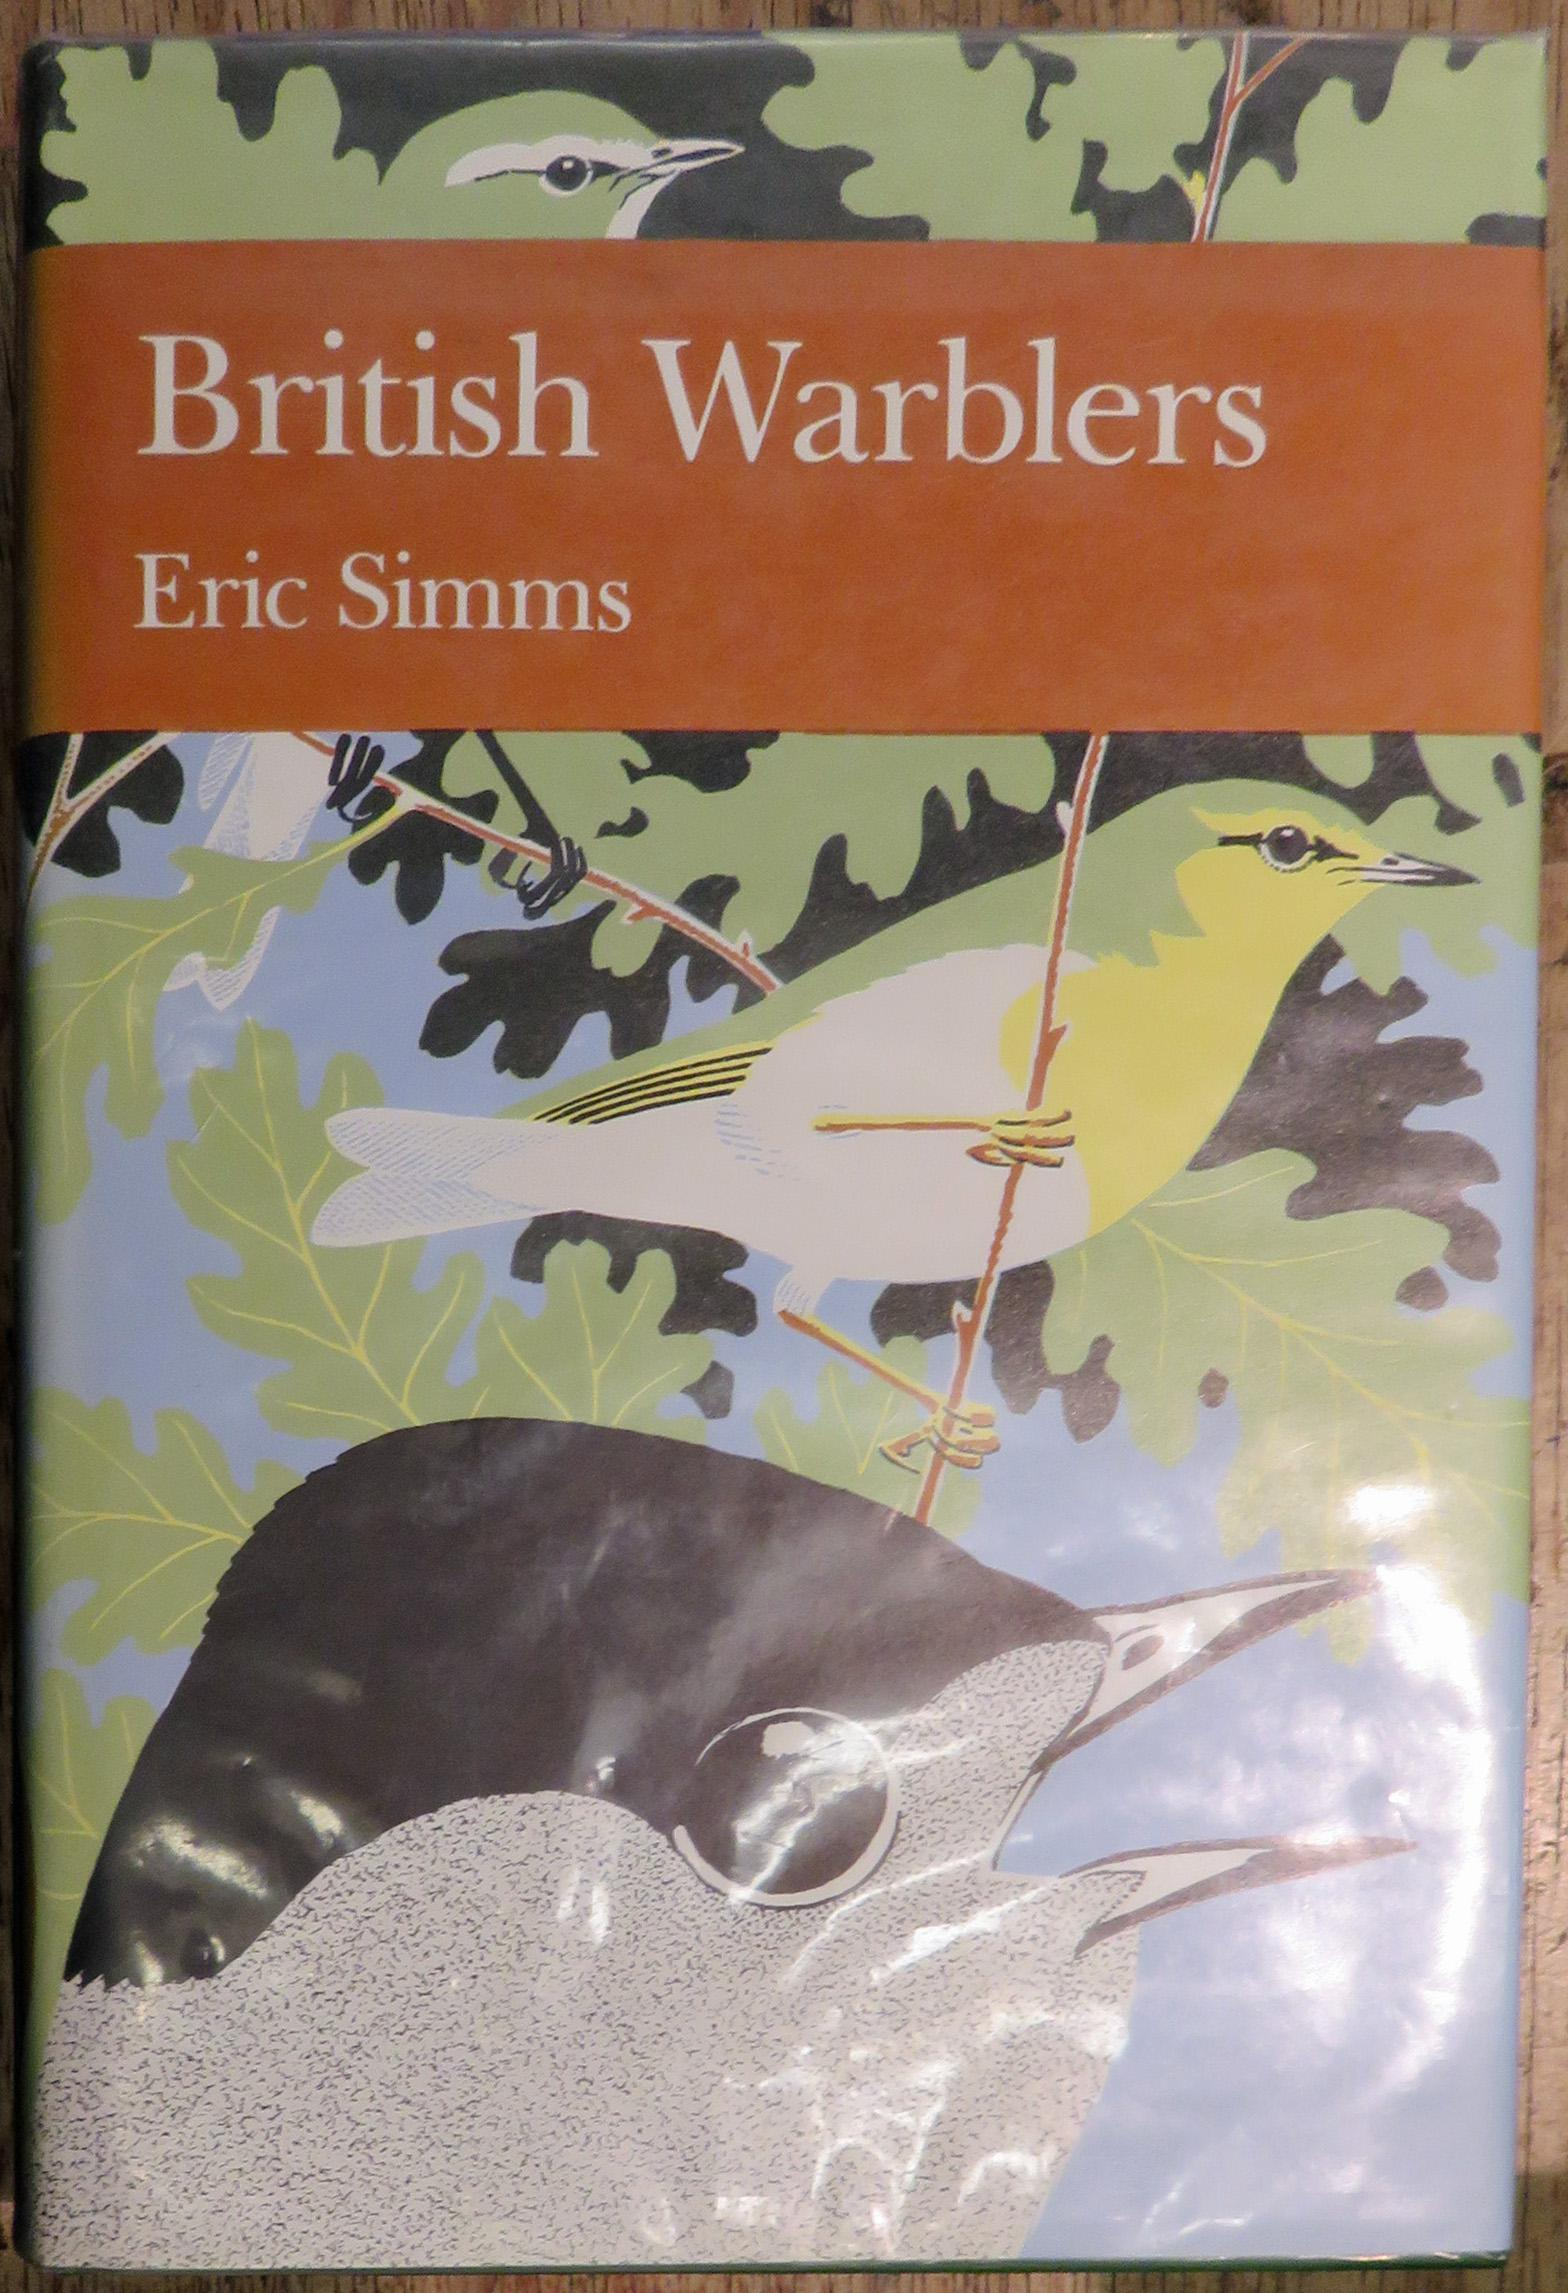 British Warblers - The New Naturalist Collection No. 71